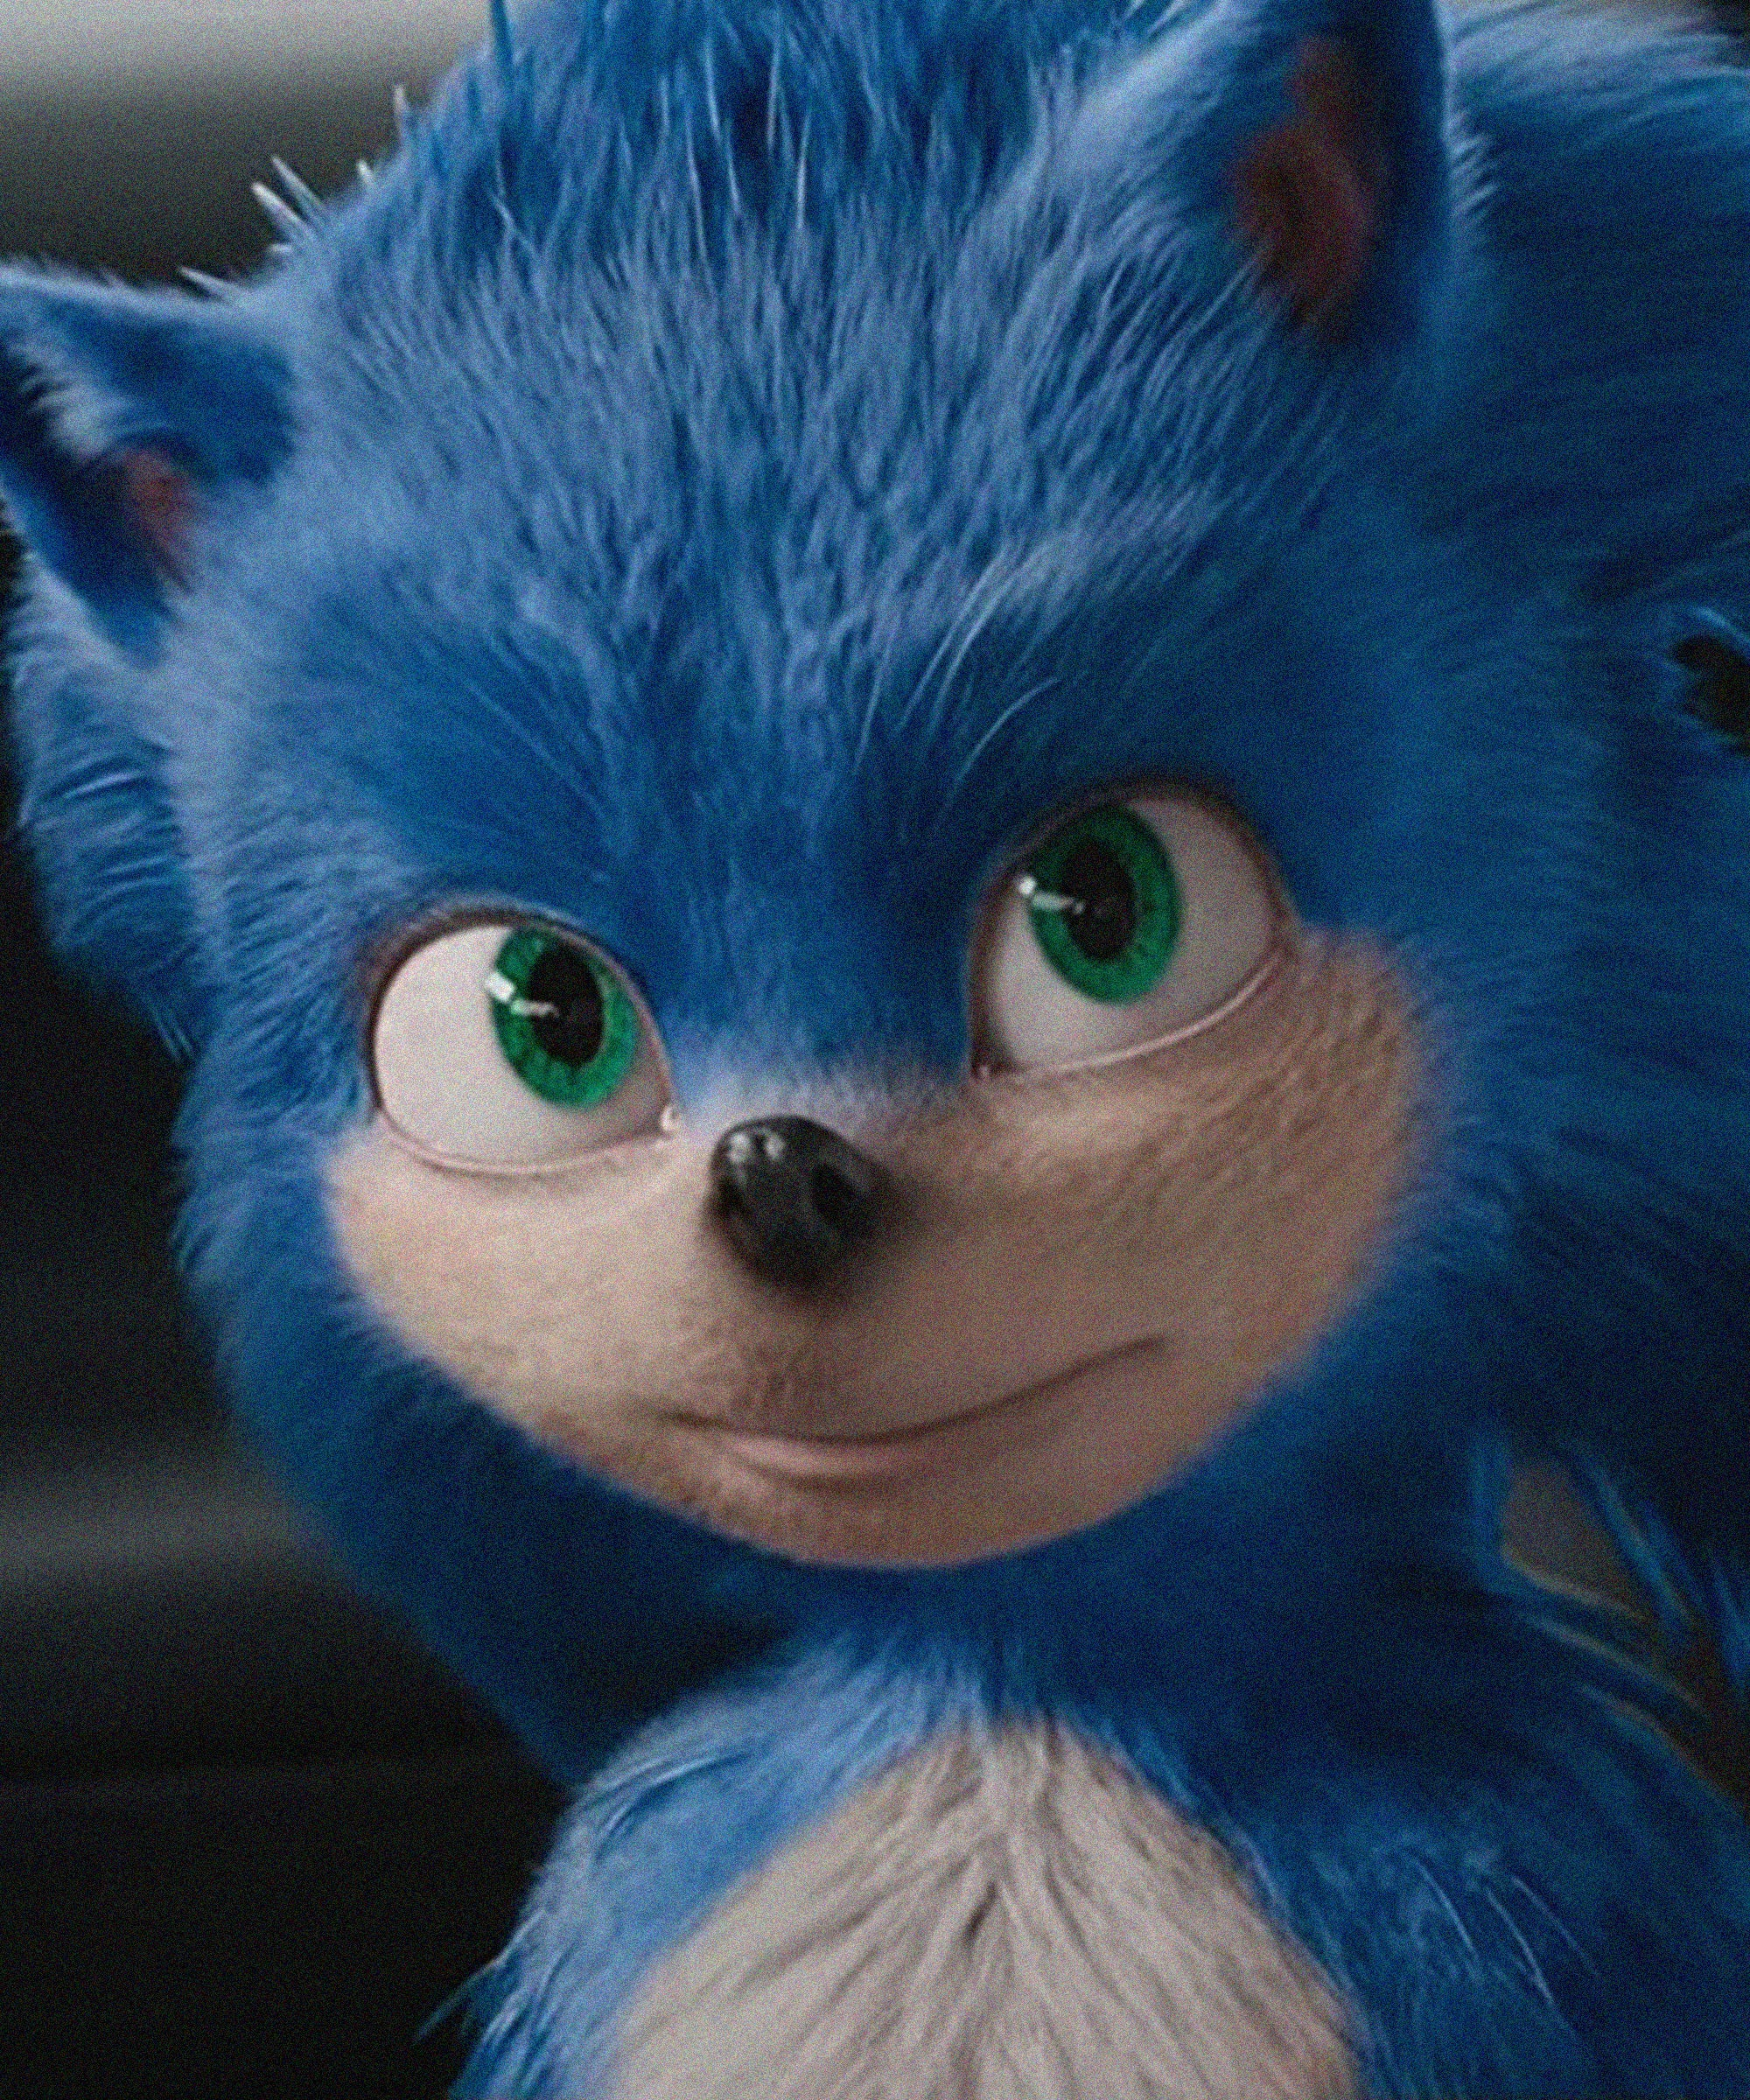 Sonic The Hedgehog Redesign Much Better For New Movie